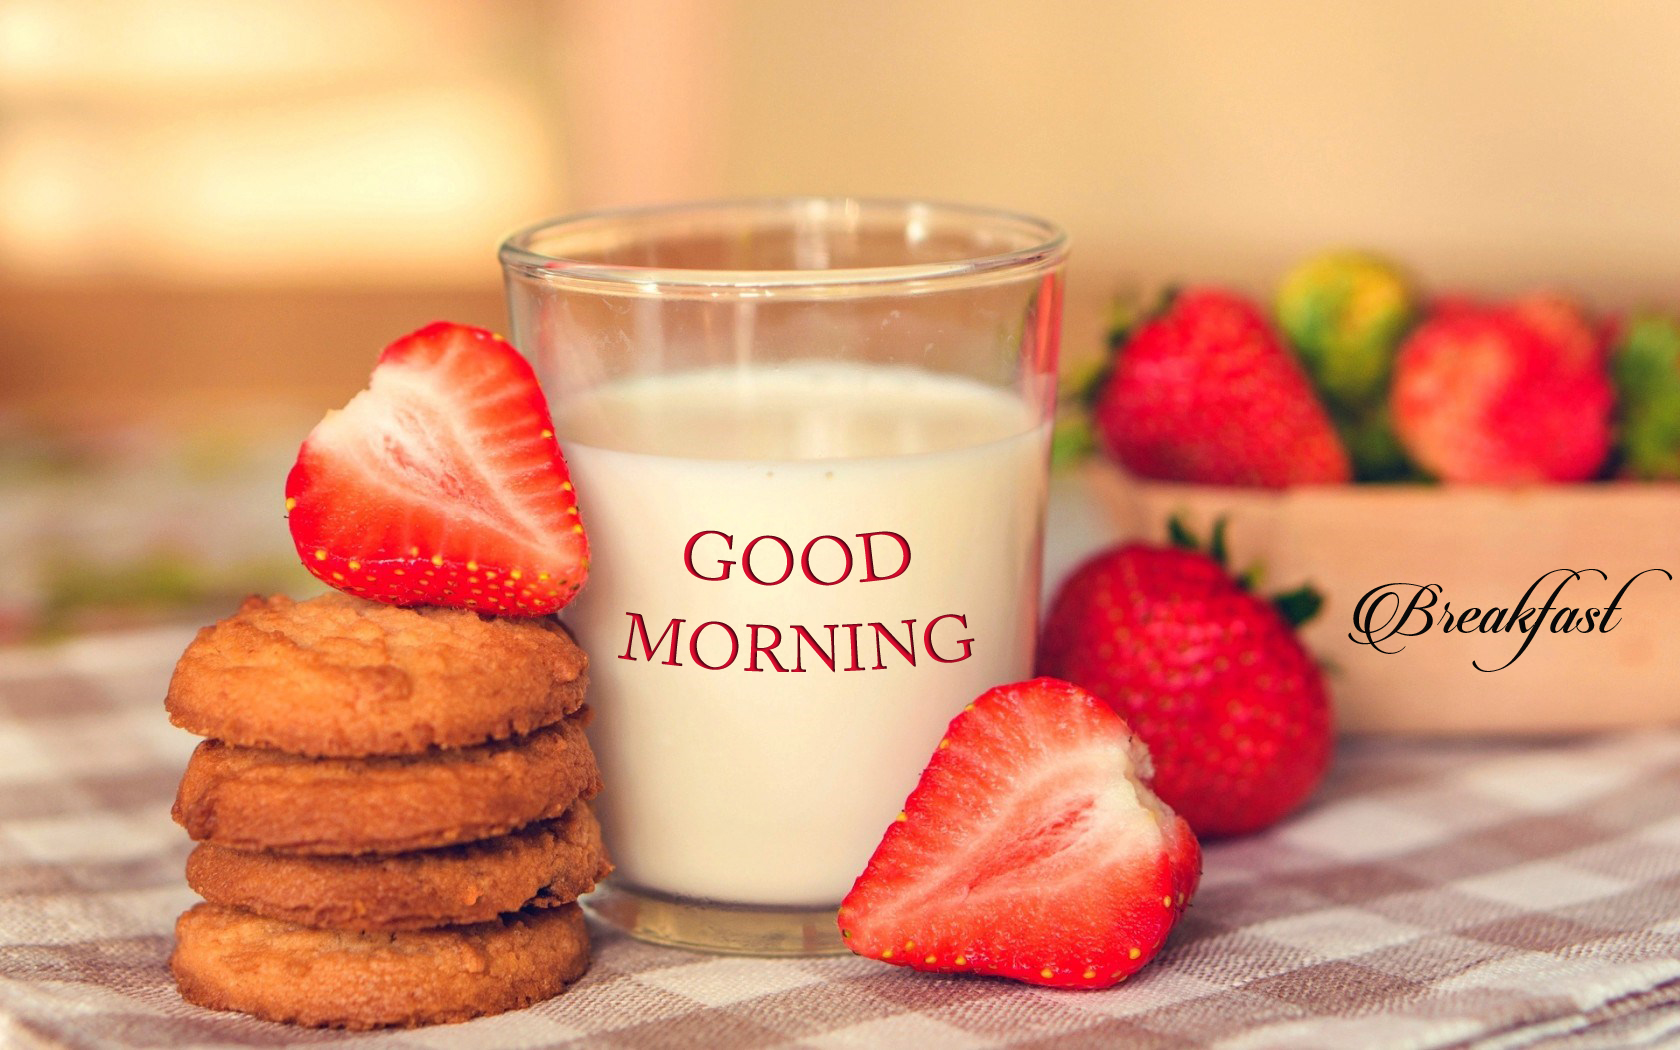 Good Morning Wishes HD Images & Pictures Free Download